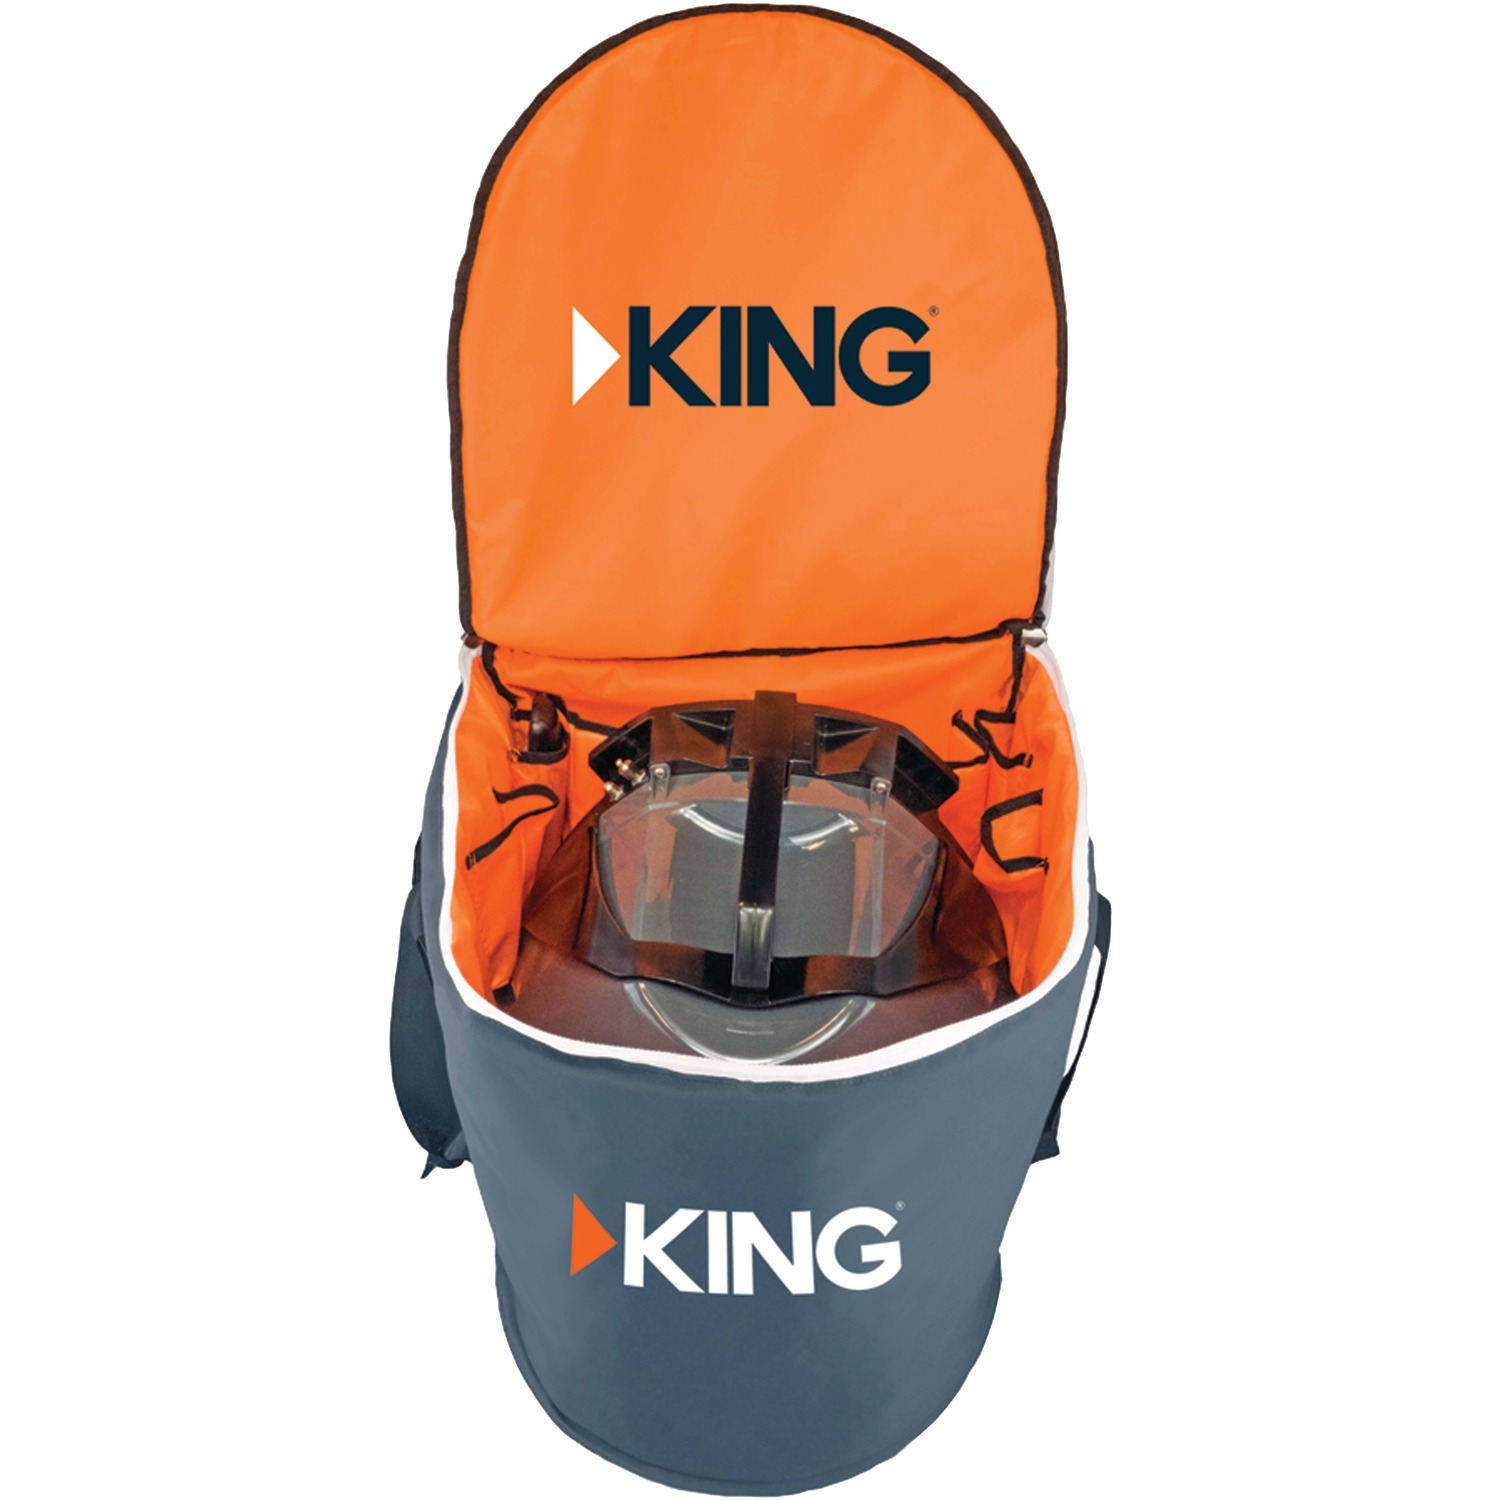 King CB1000 King Quest / King Tailgater Padded Carry Bag For Use With Portable Satellite TV Antenna Models VQ4500, VQ4200, VQ4100